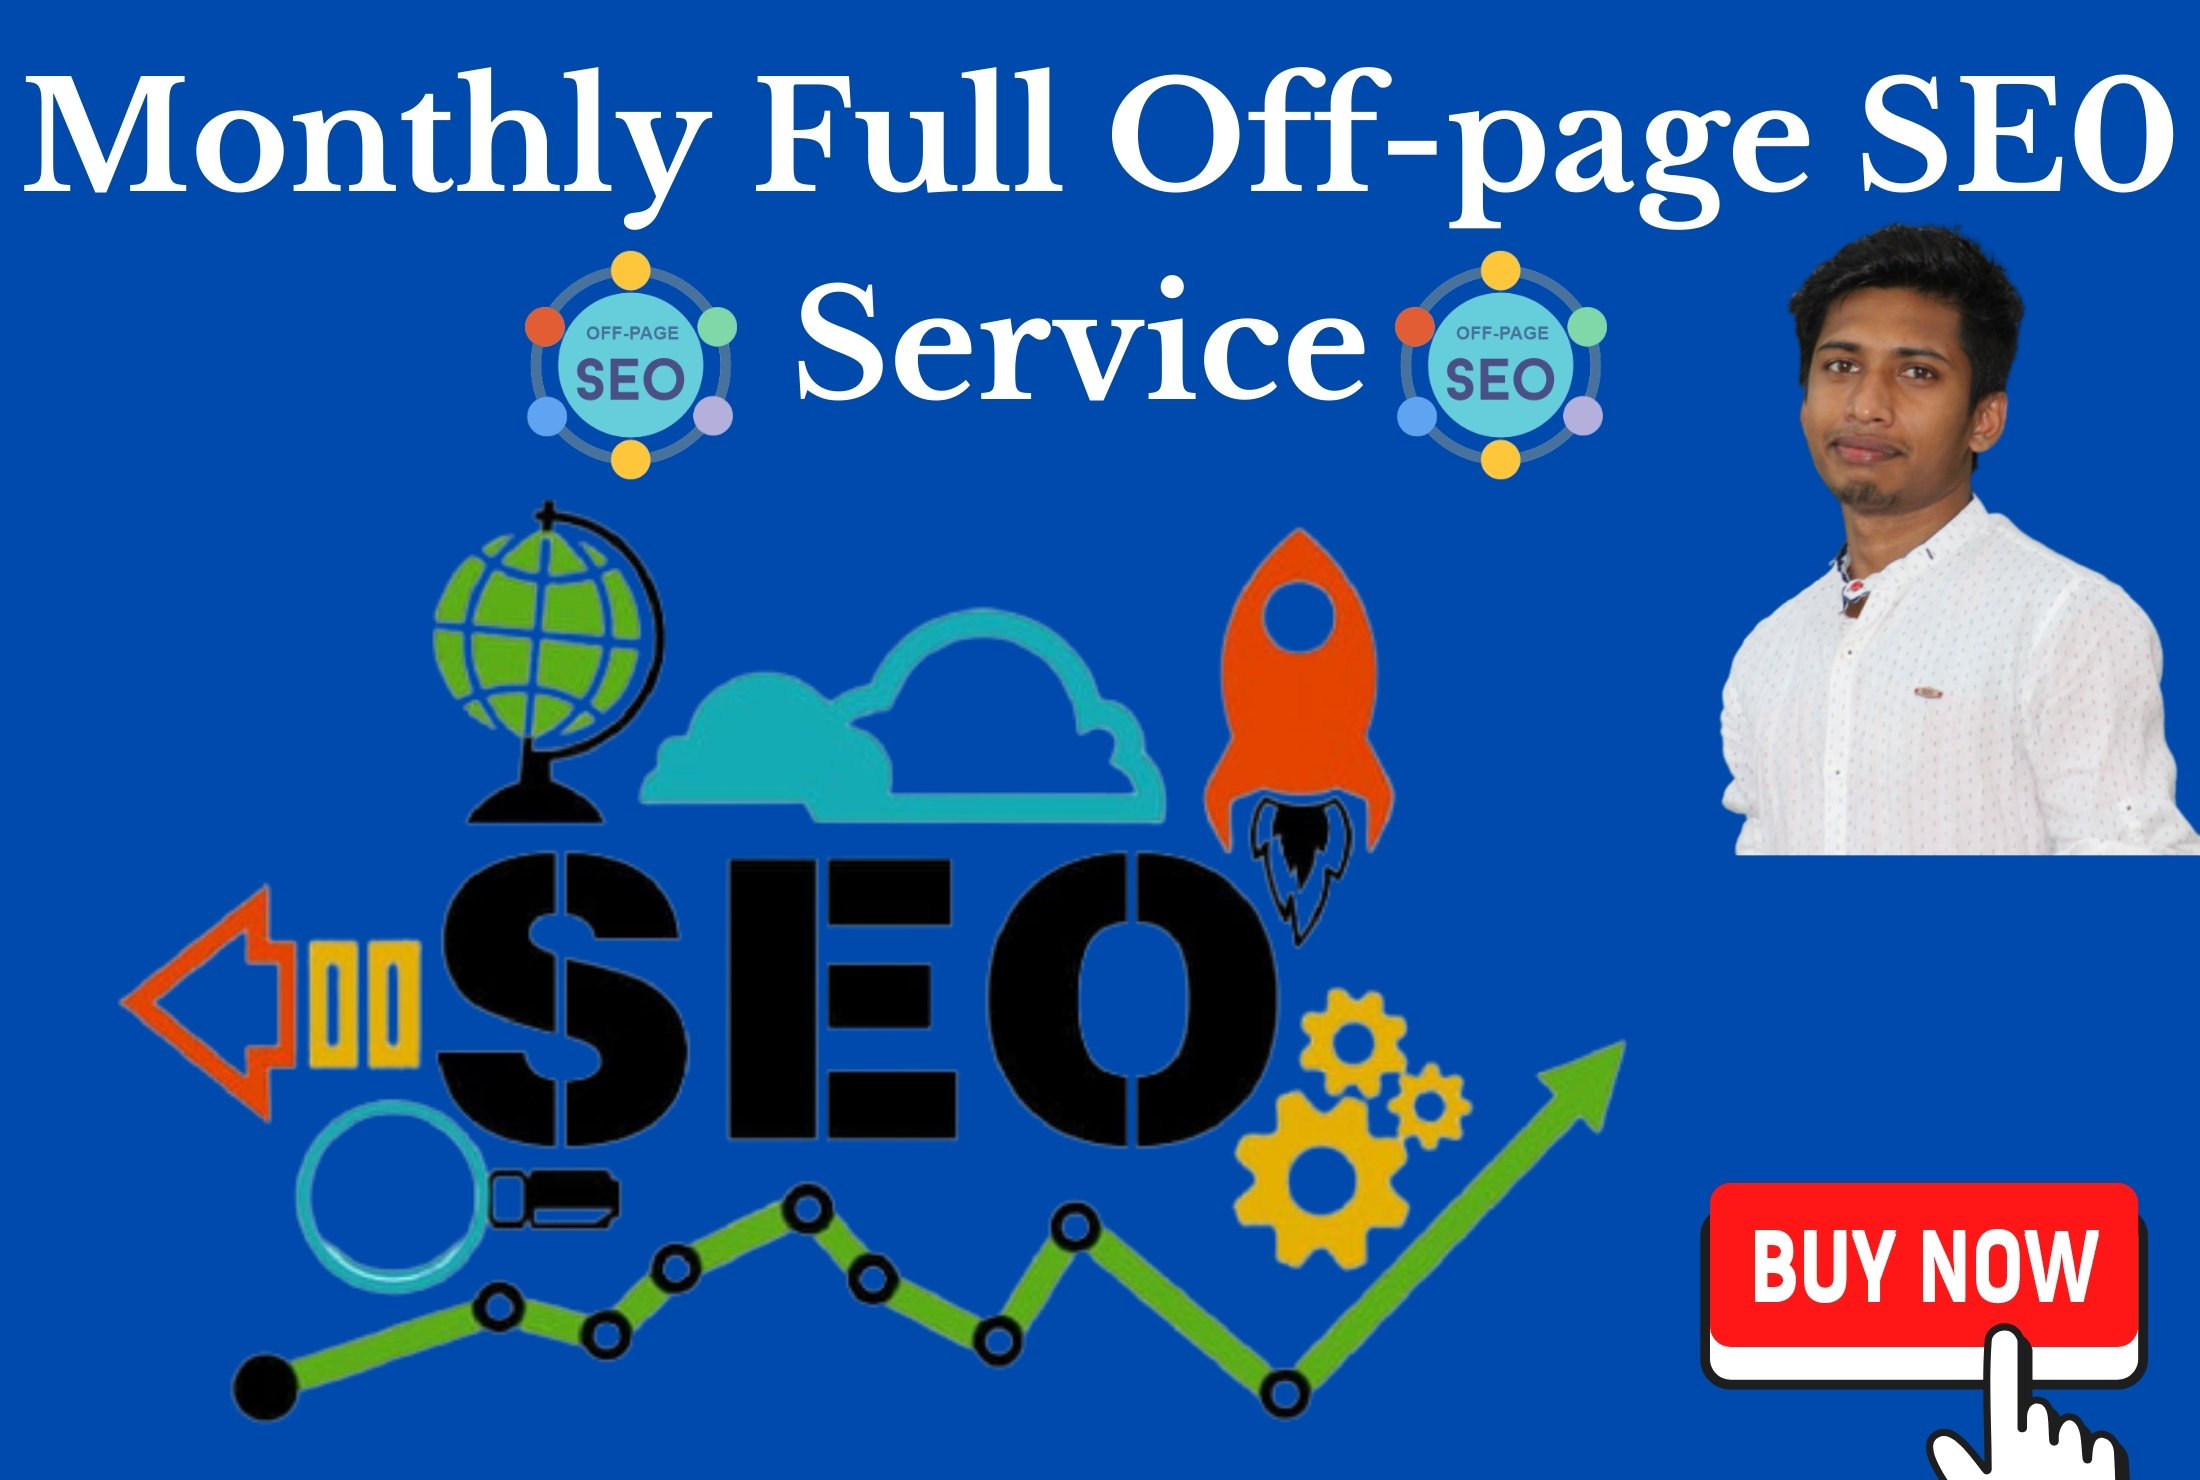 I will do SEO full off page optimization for your site tier1 & tier 2 backlink